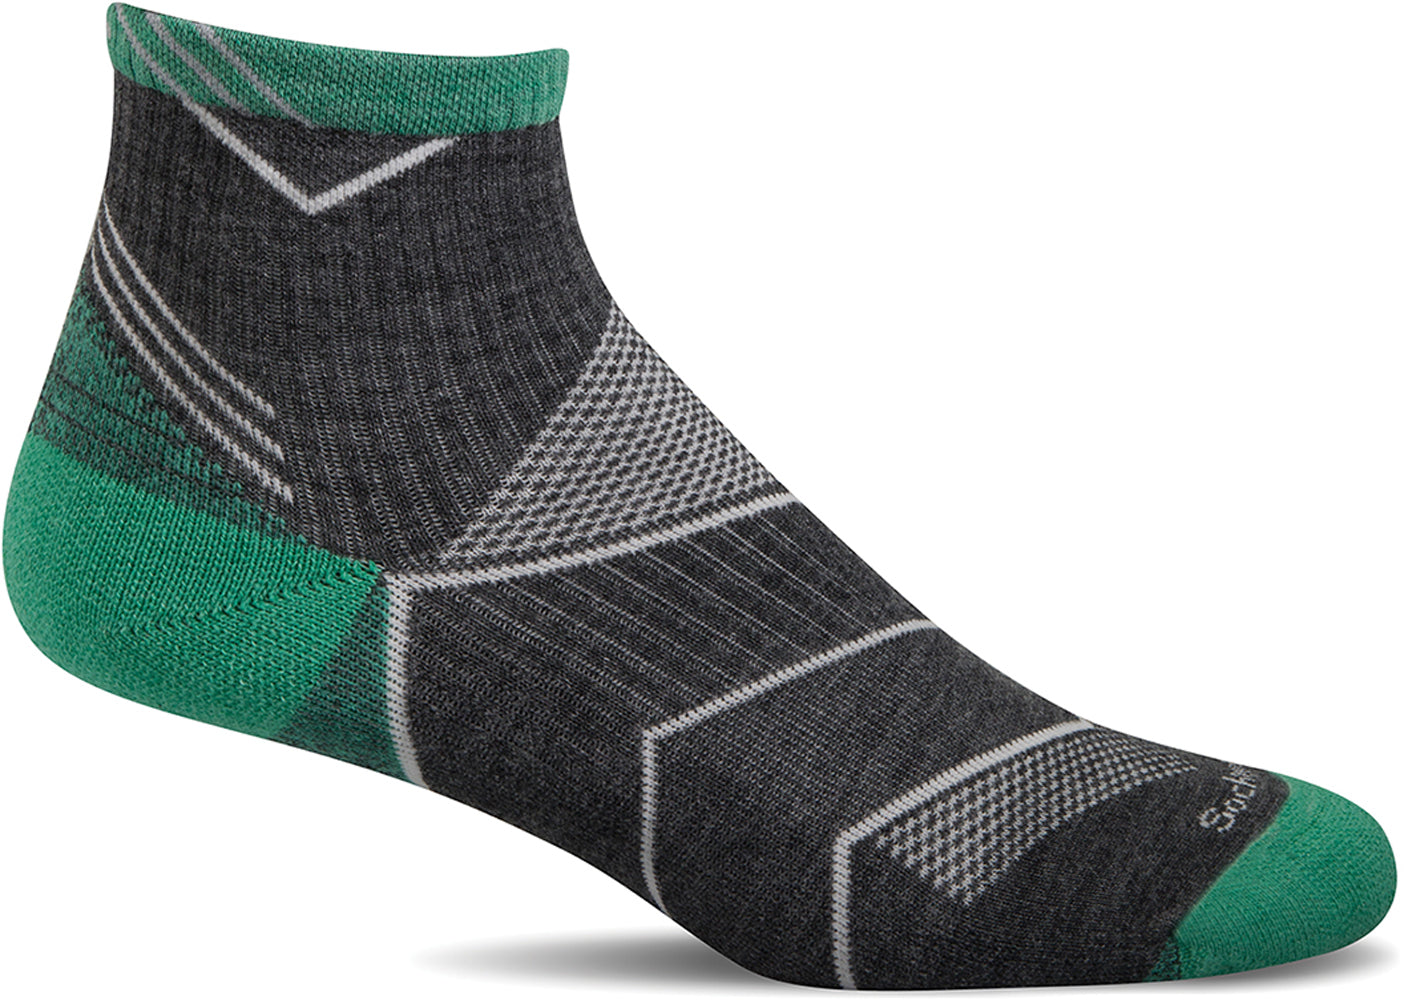 Sockwell Women's Incline Quarter Sock in Charcoal color from the side